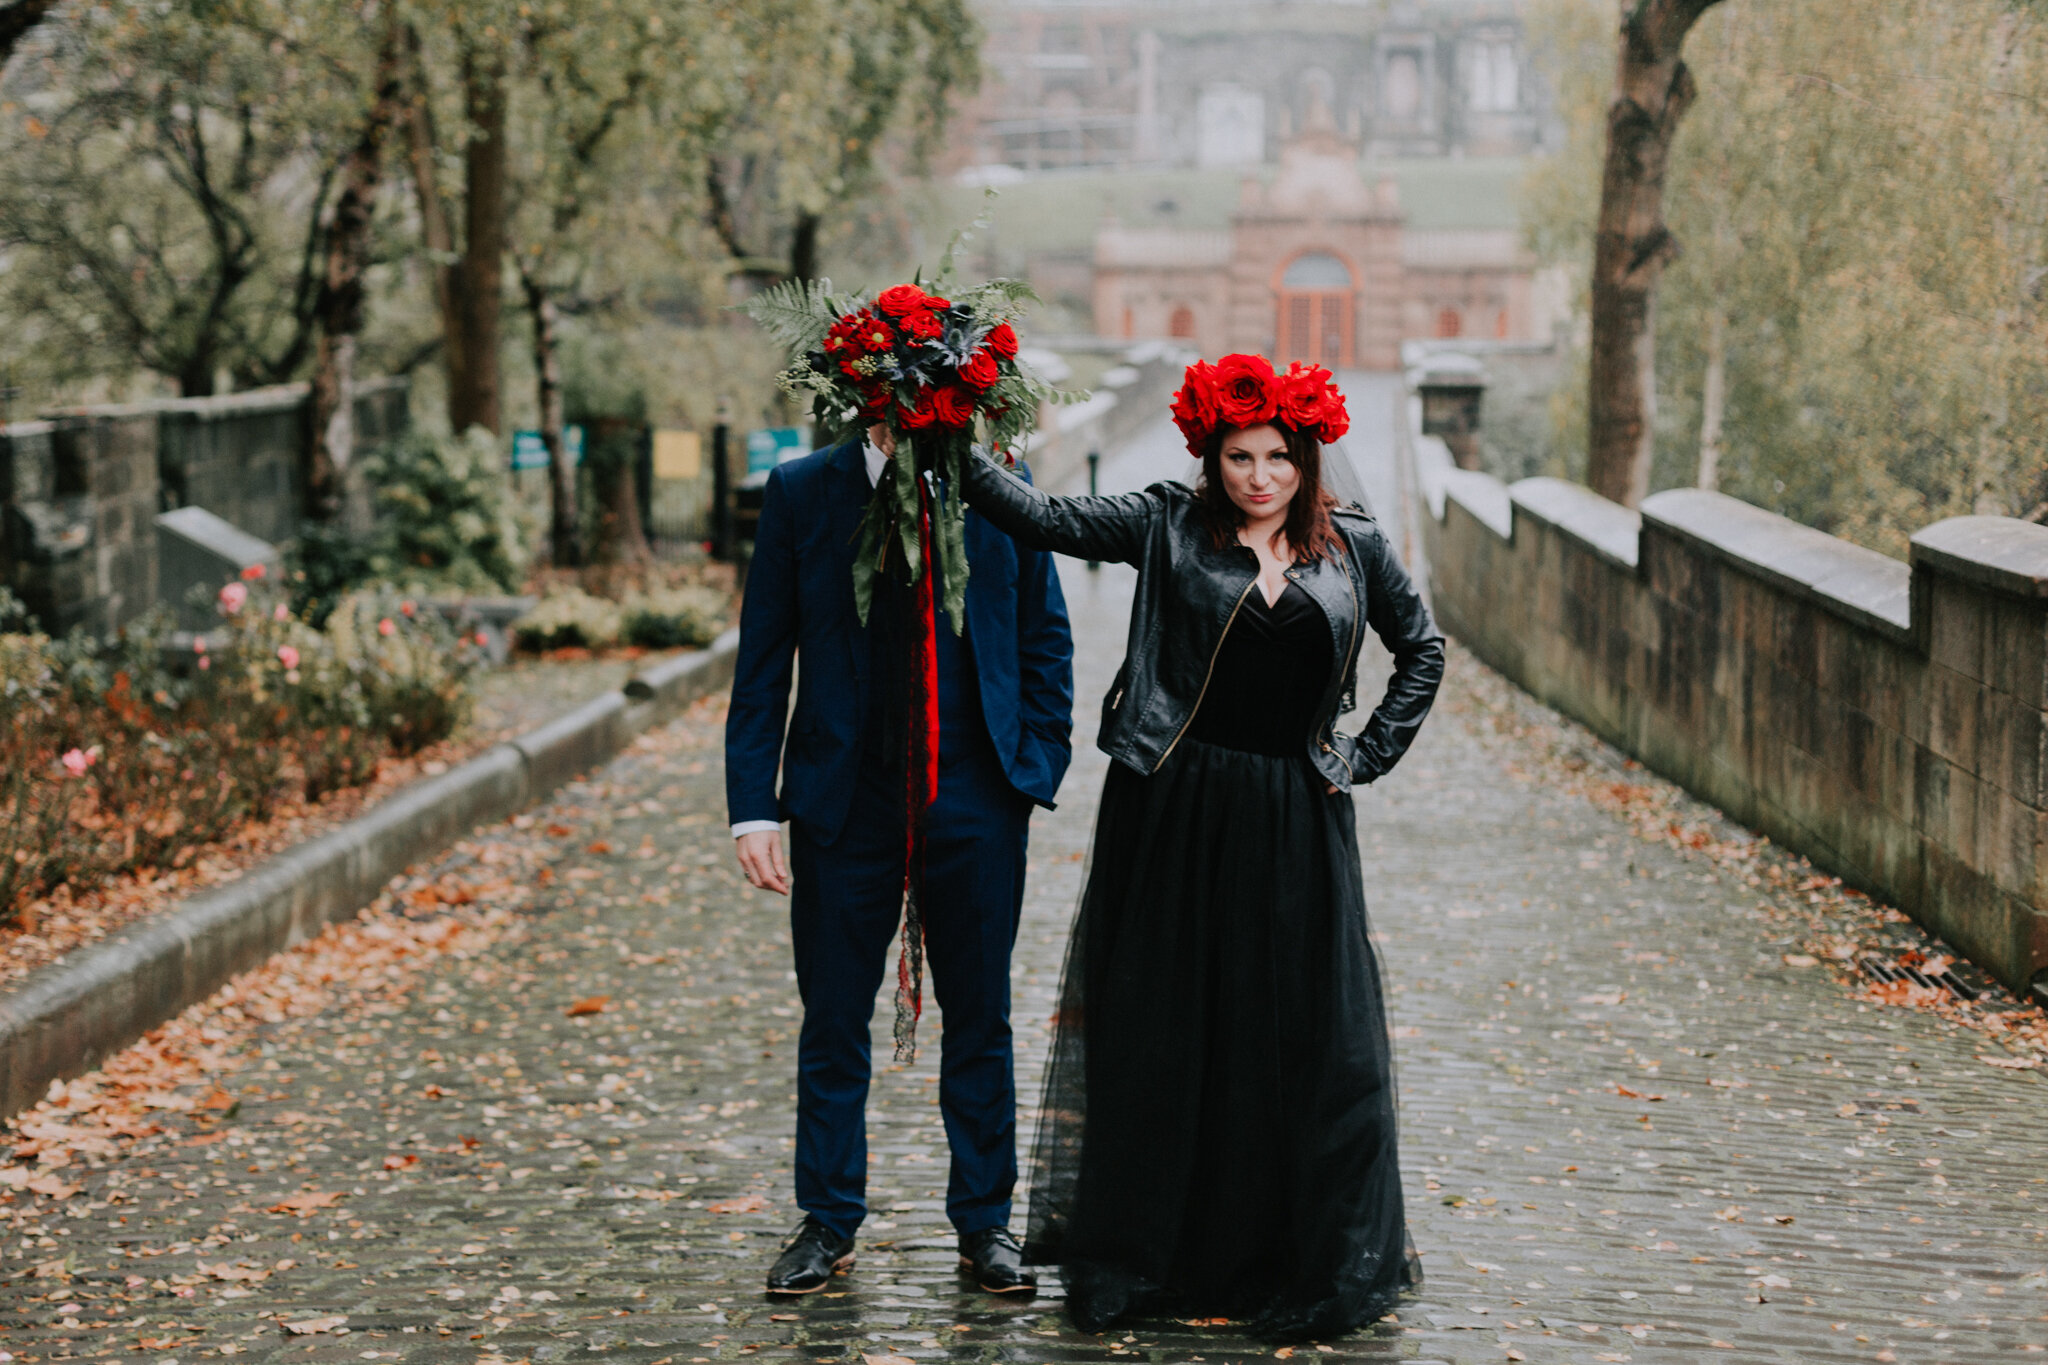 Alternative Quirky Halloween Glasgow City Wedding Photographer_J31A1053.jpg